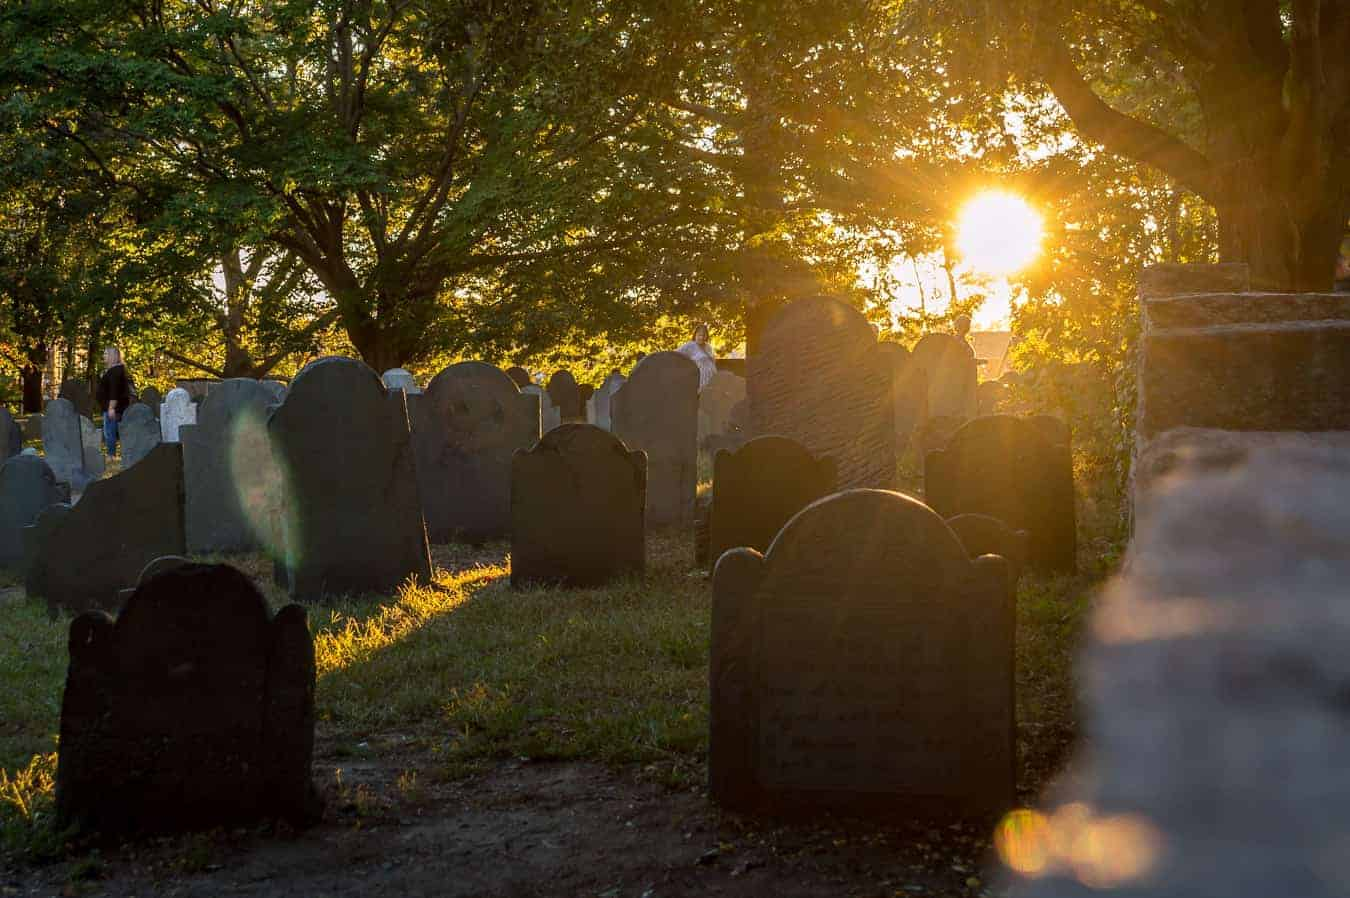 Places To Walk Around In Boston On Halloween 2020 13 Best Things to Do in Salem MA in October (Halloween 2020) | New